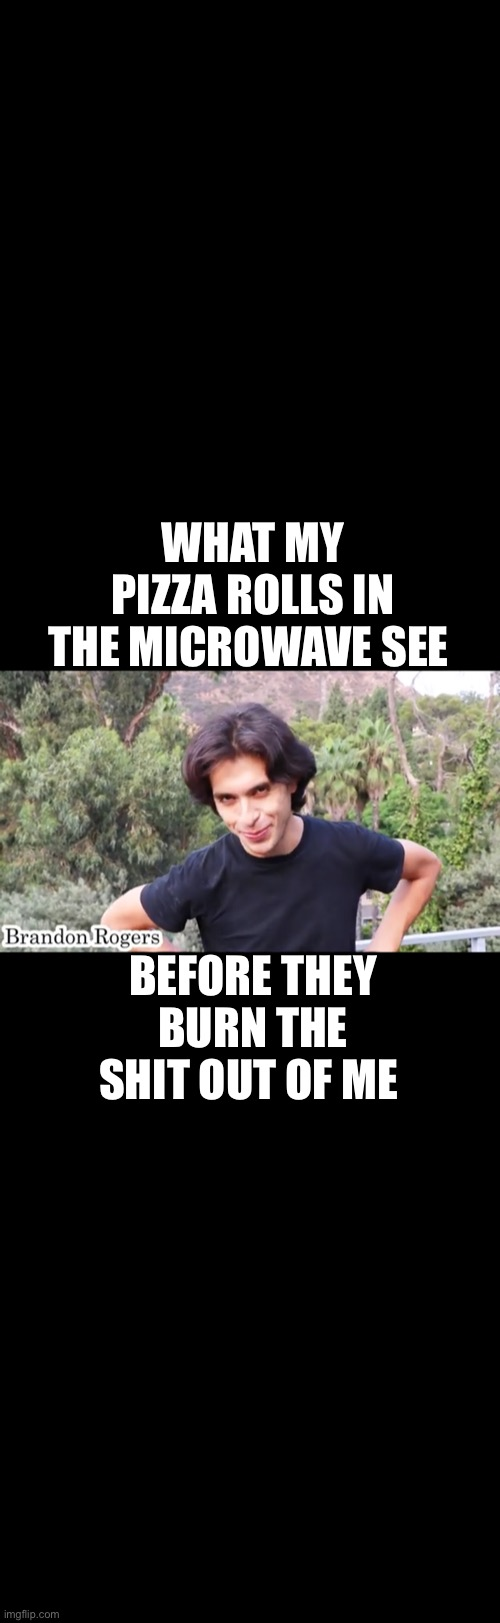 WHAT MY PIZZA ROLLS IN THE MICROWAVE SEE; BEFORE THEY BURN THE SHIT OUT OF ME | image tagged in funny memes,pizza rolls | made w/ Imgflip meme maker